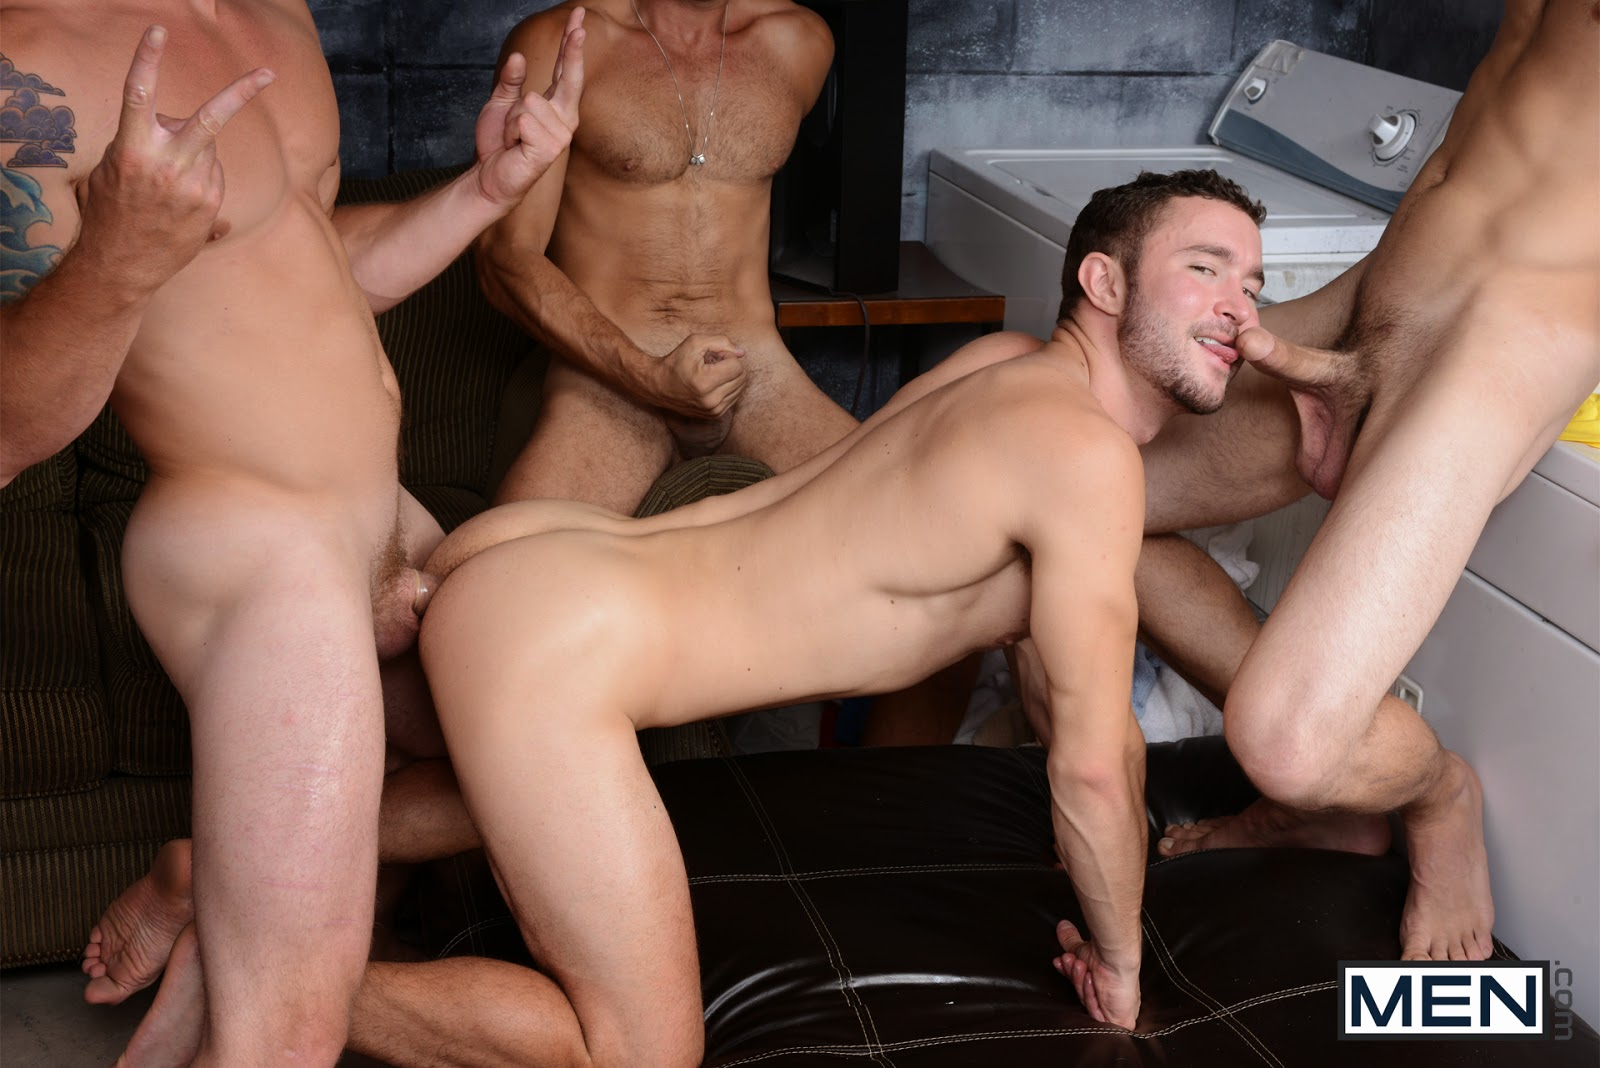 Mencom colt rivers and jack king sneaky assistant drill my hole